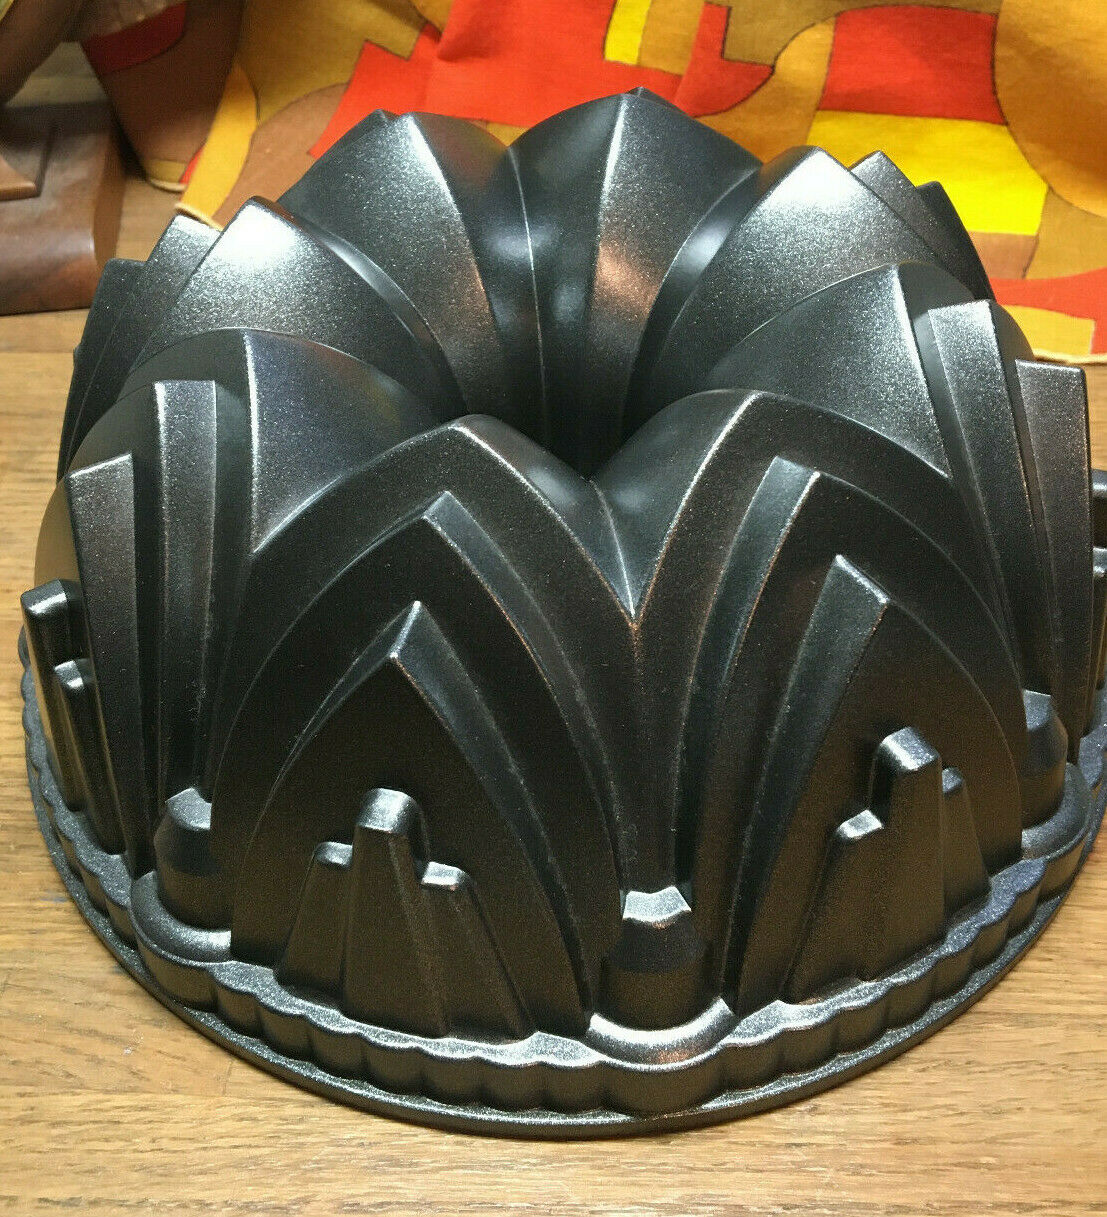 Nordic Ware Cathedral Bundt Cake Pan Heavy Cast Aluminum 10 Cups Clean NICE  - $24.99